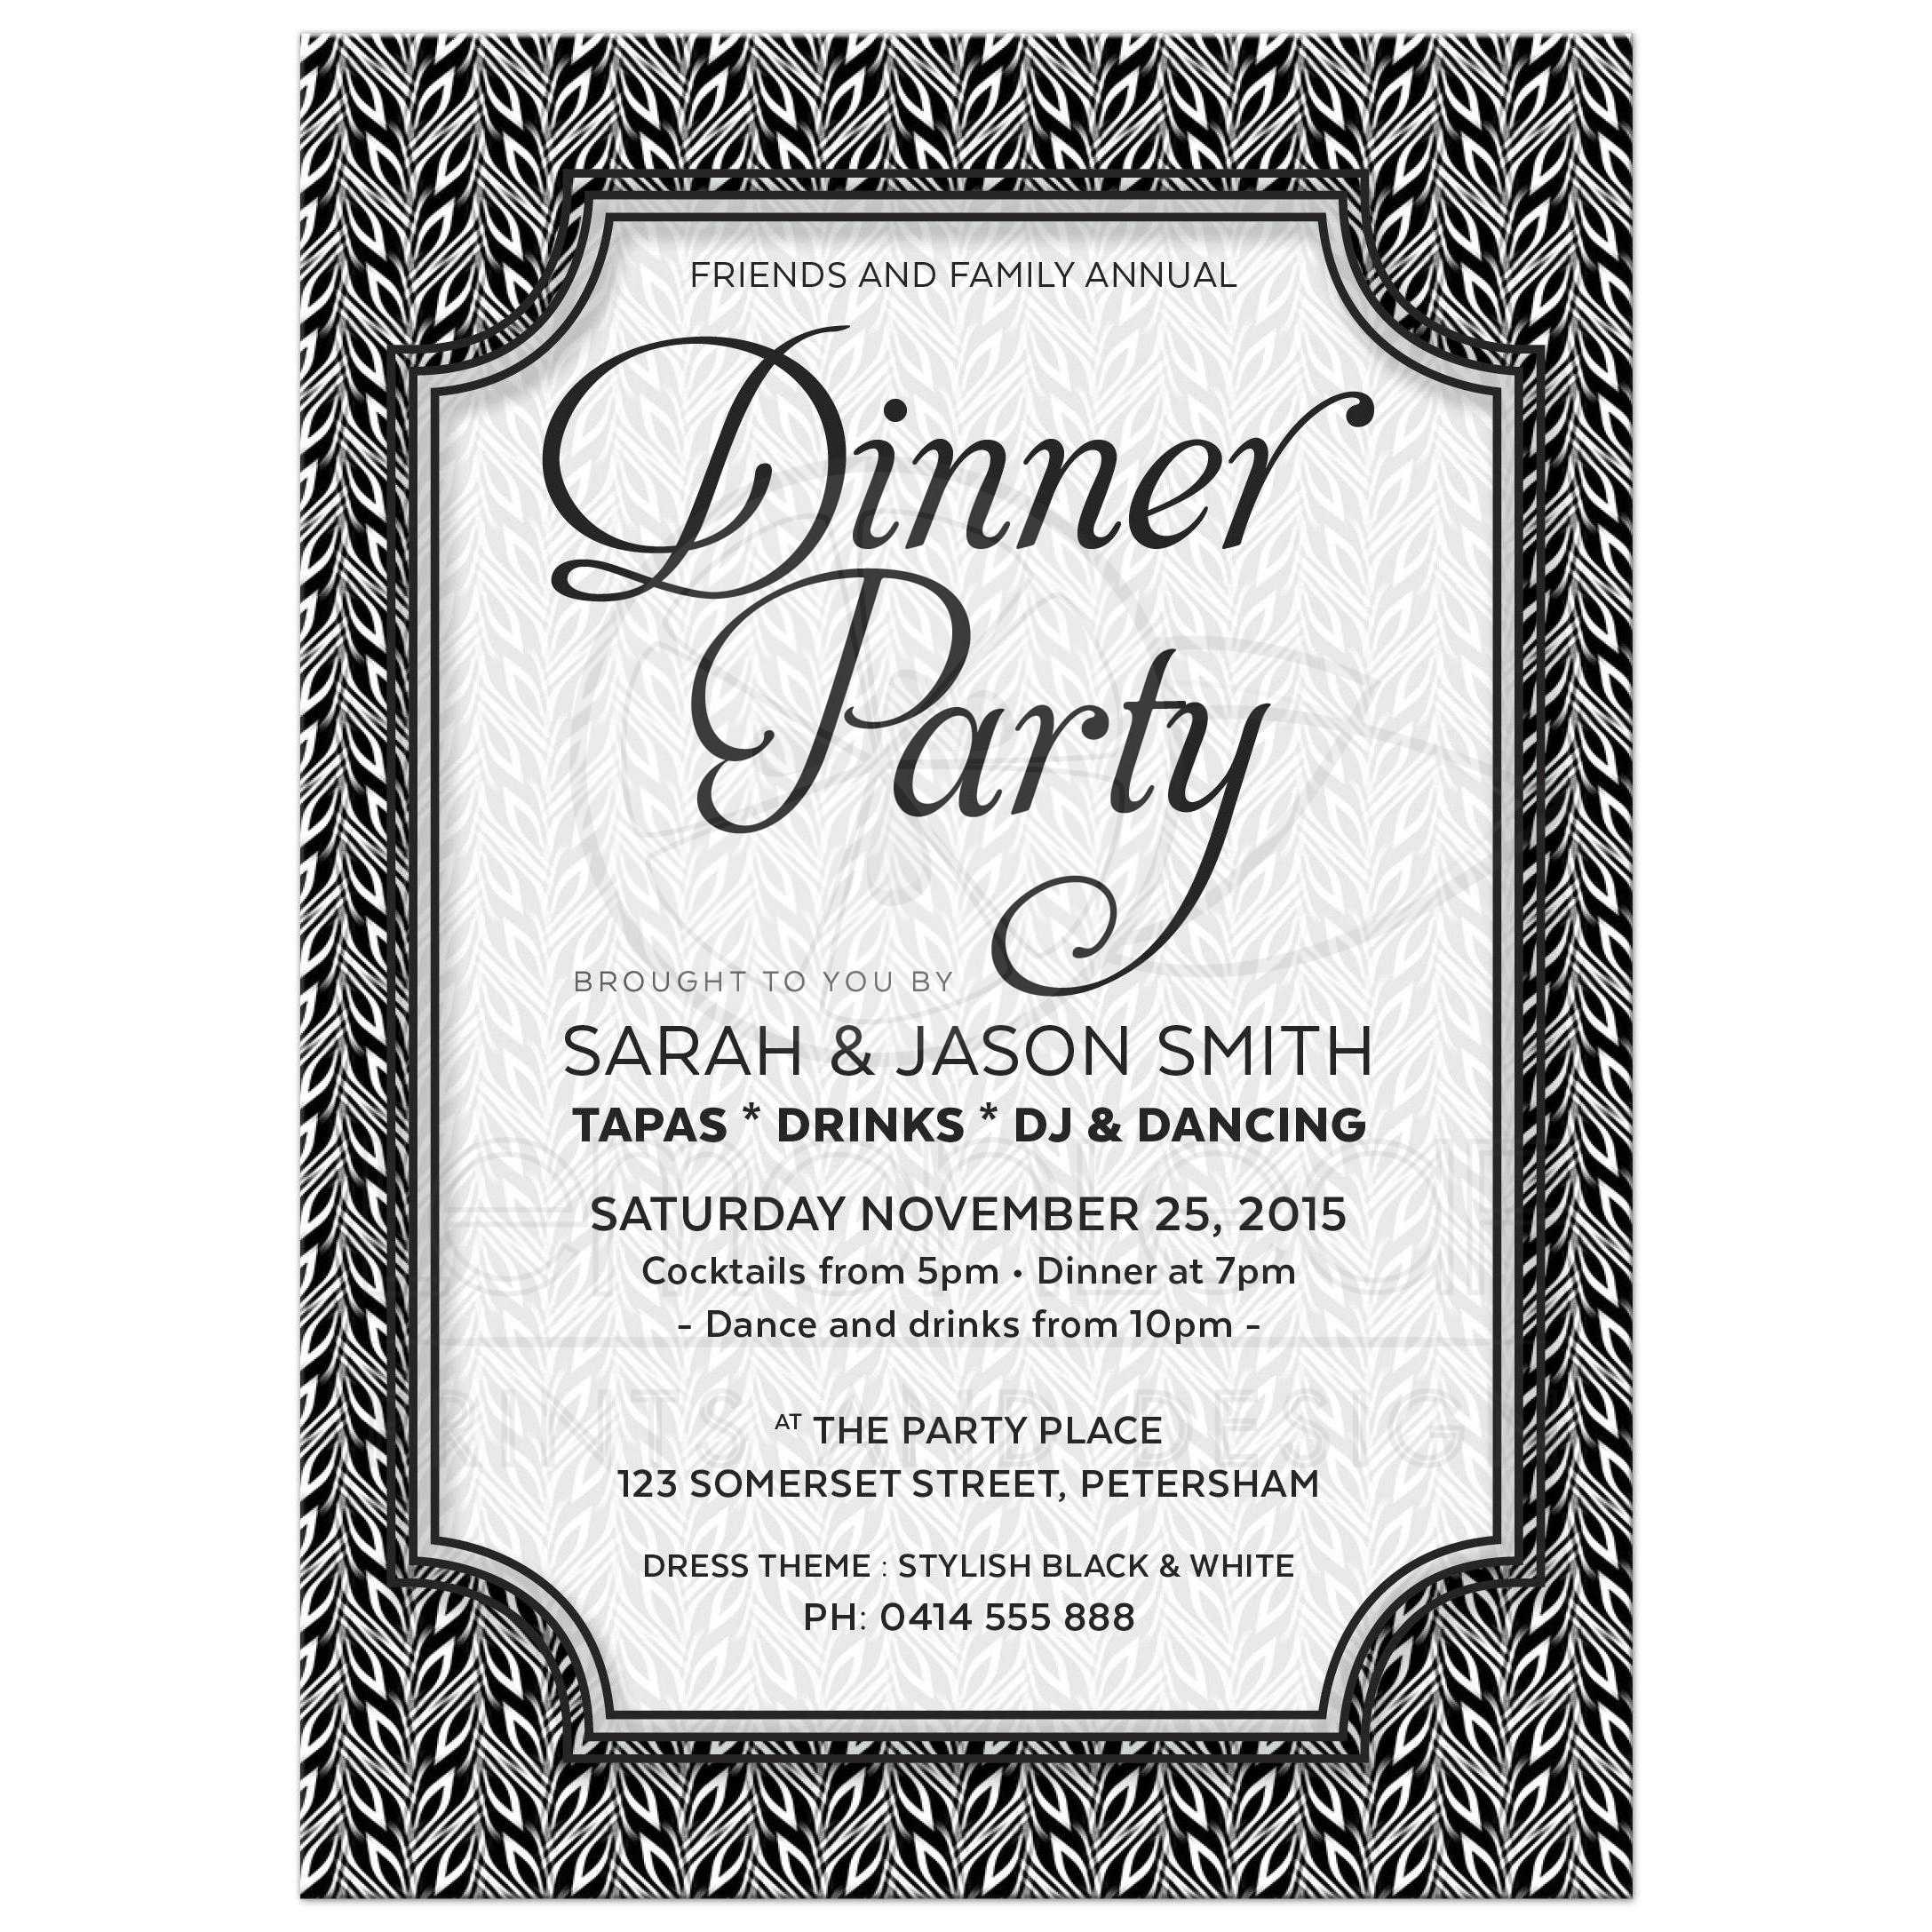 Exceptional Dinner Party Invitation Ideas Part - 4: Simply Stylish 2 Black White Dinner Party Invite ...